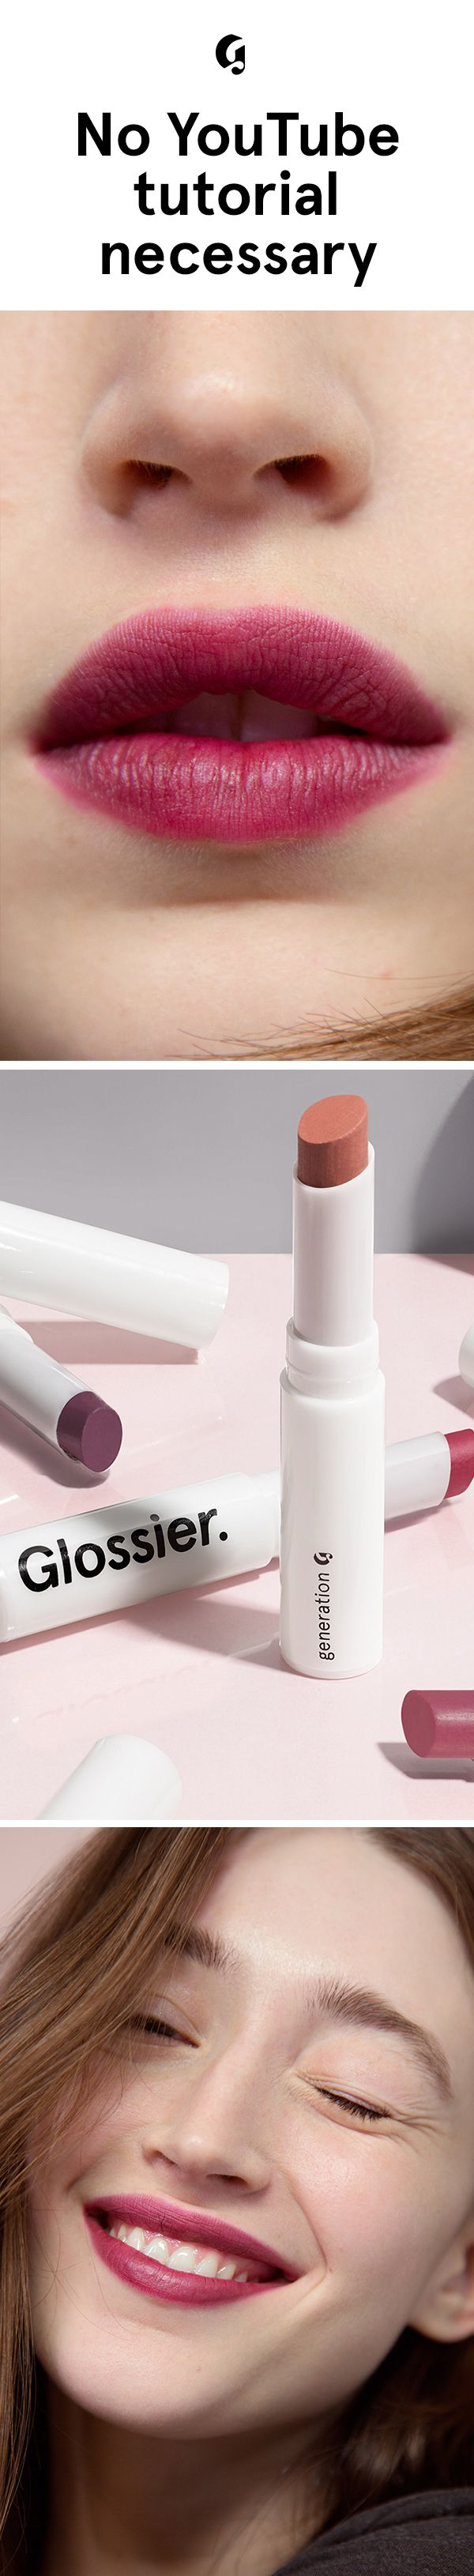 Meet Generation G sheer matte lipstick. Our unique, non-drying formula gives your lips a soft, popsicle-stain flush of color. No liner, no blotting, nothing complicated--just swipe onto naked lips! Comes in four shades that'll look really good on you. Yours at Glossier.com.